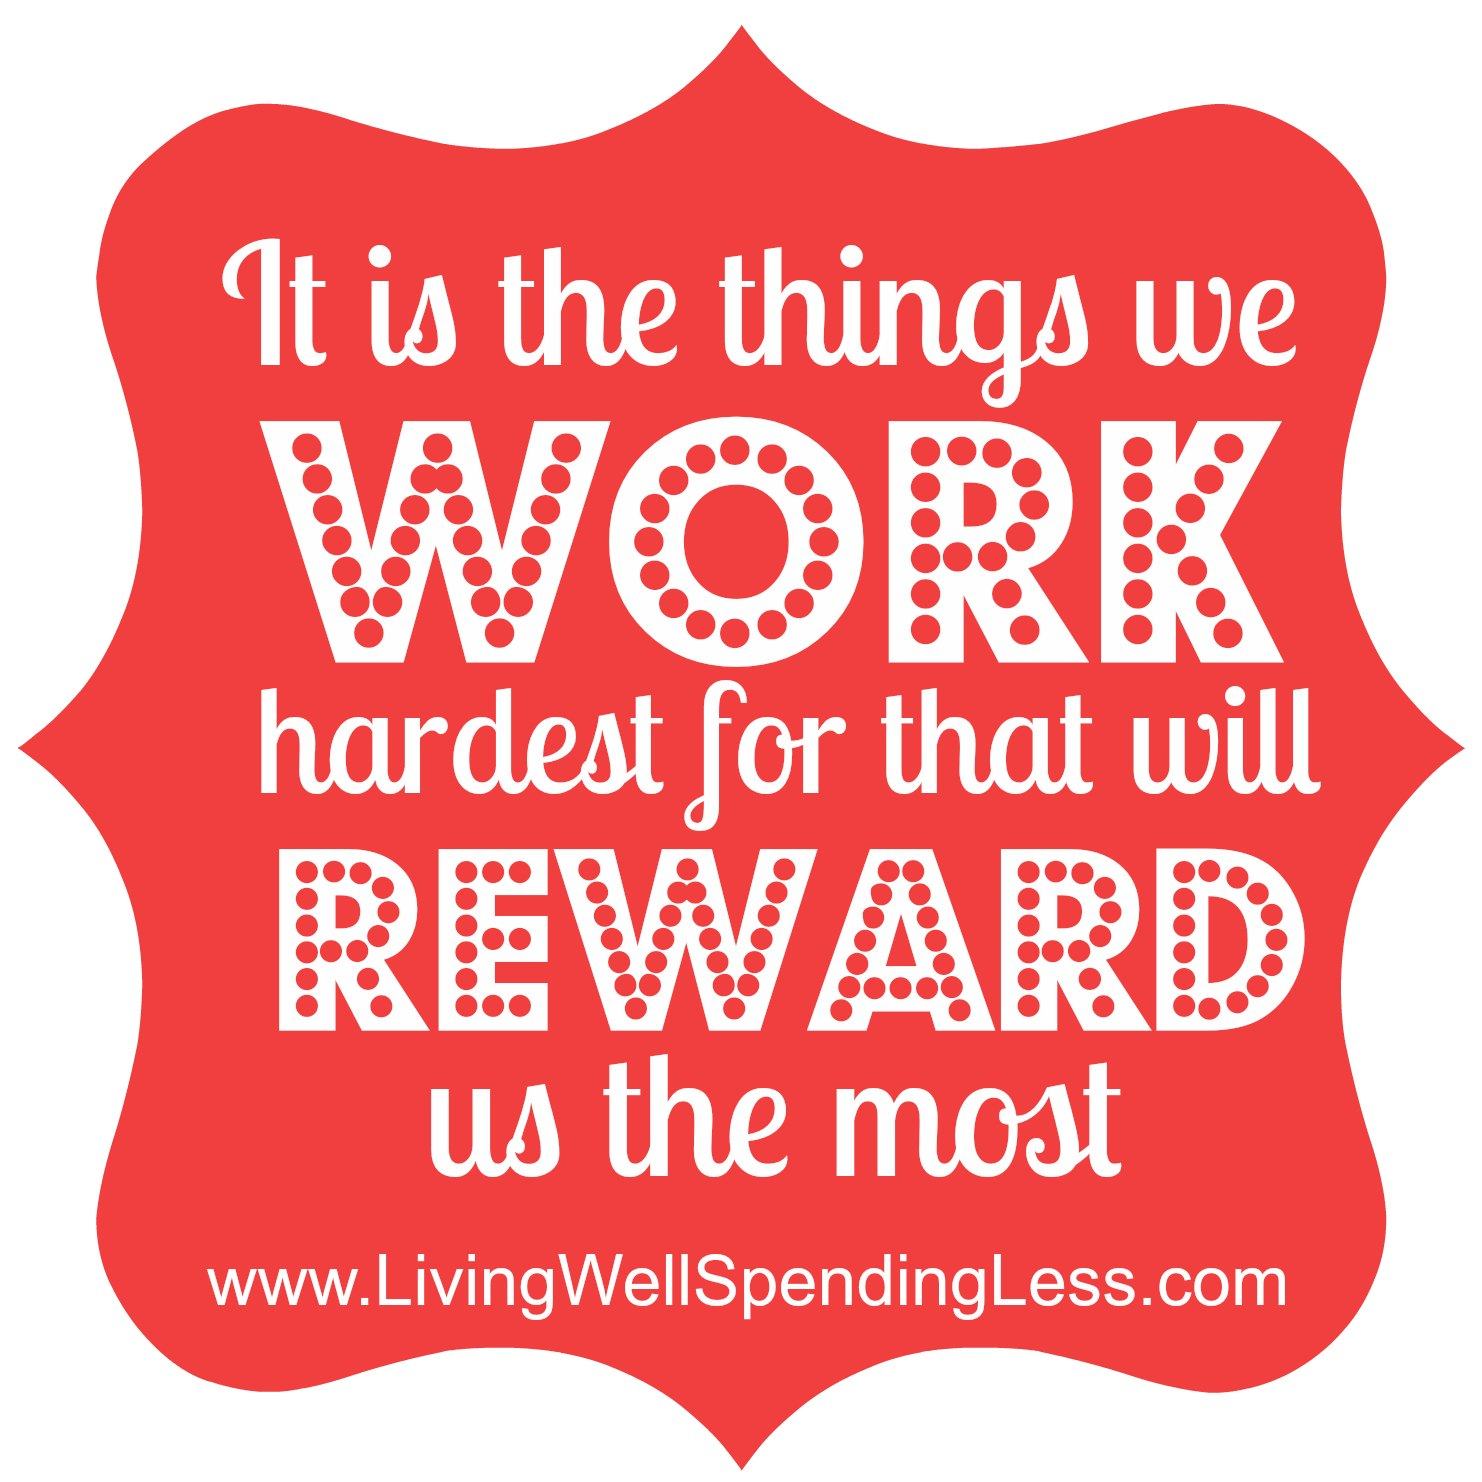 Reward quote #6